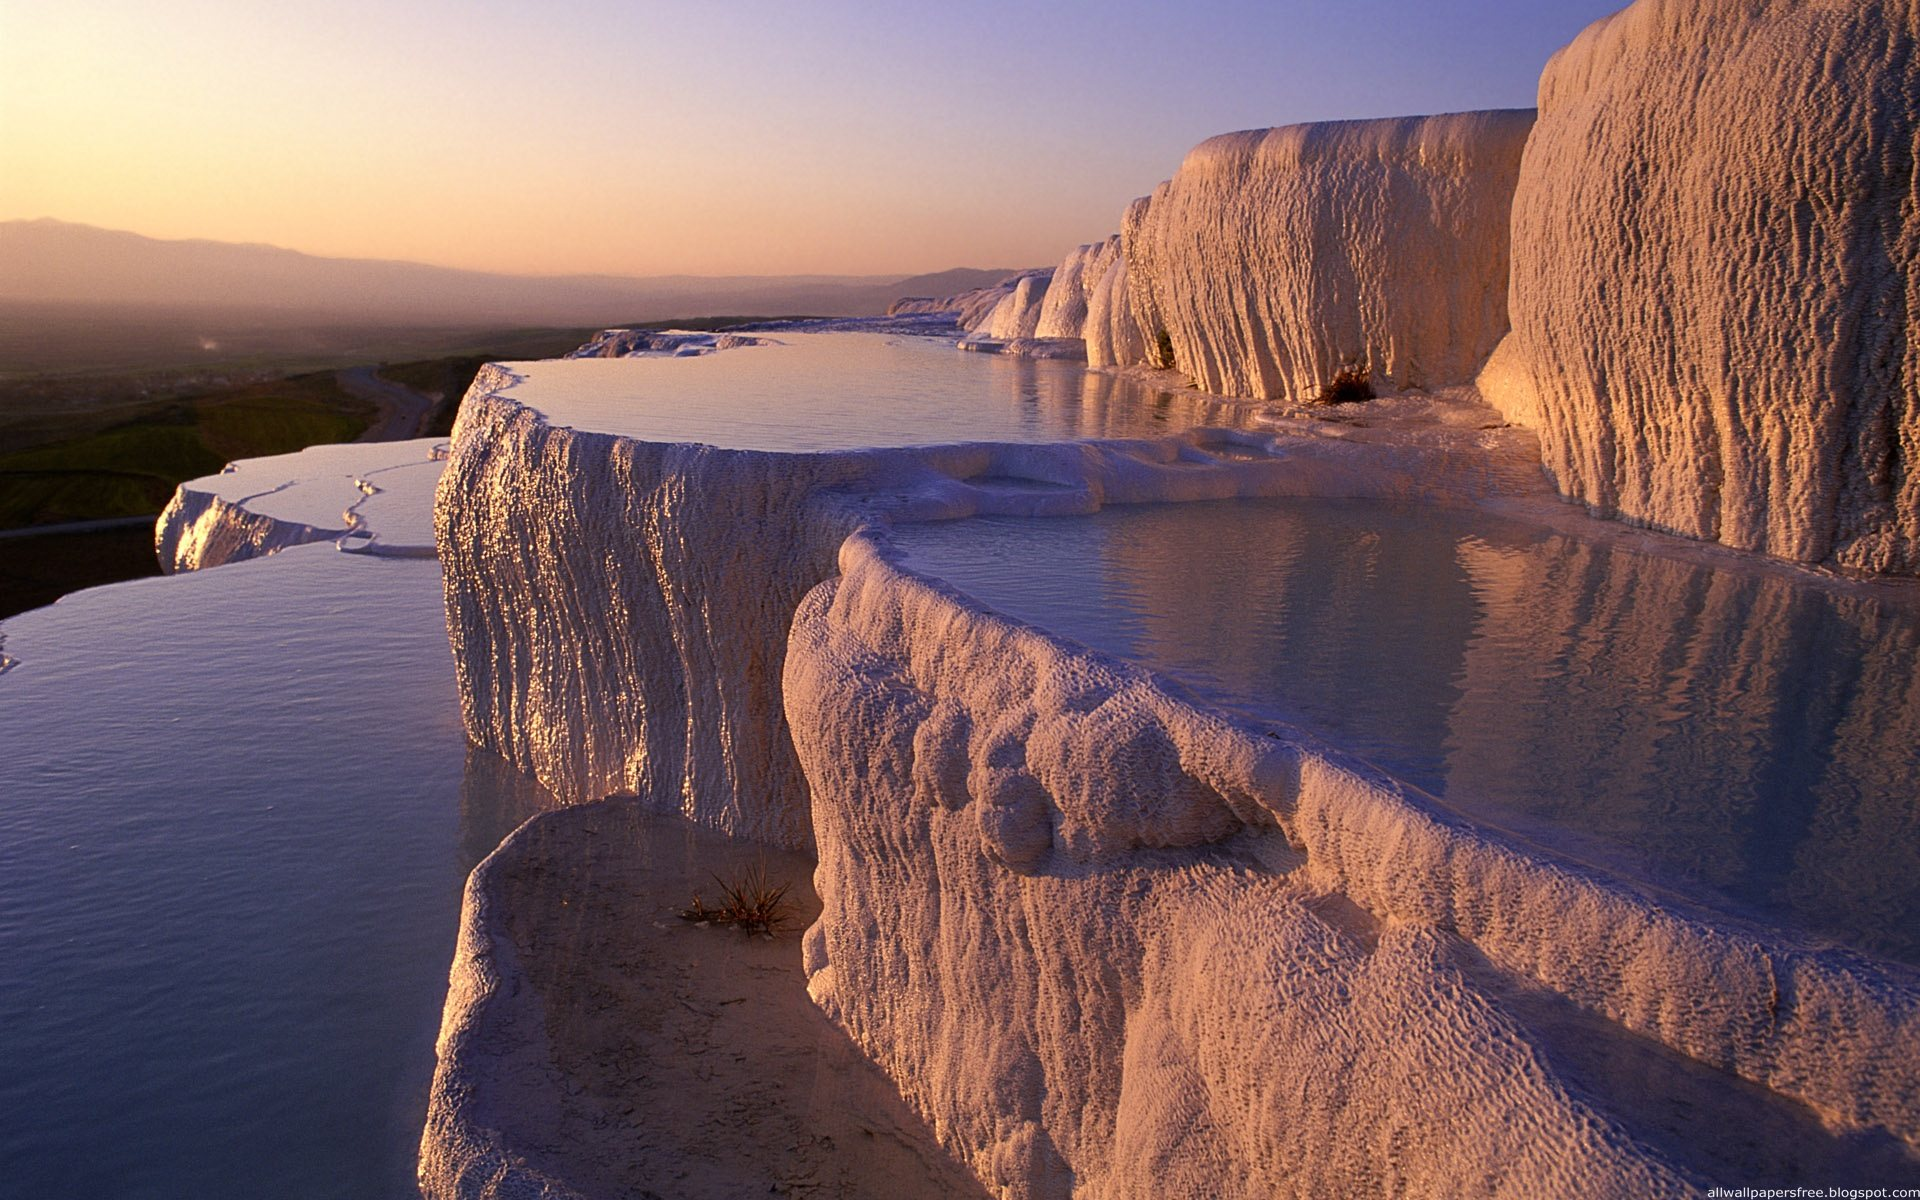 Biker Wallpaper Quotes Pamukkale Turkey Wallpaper 1920x1200